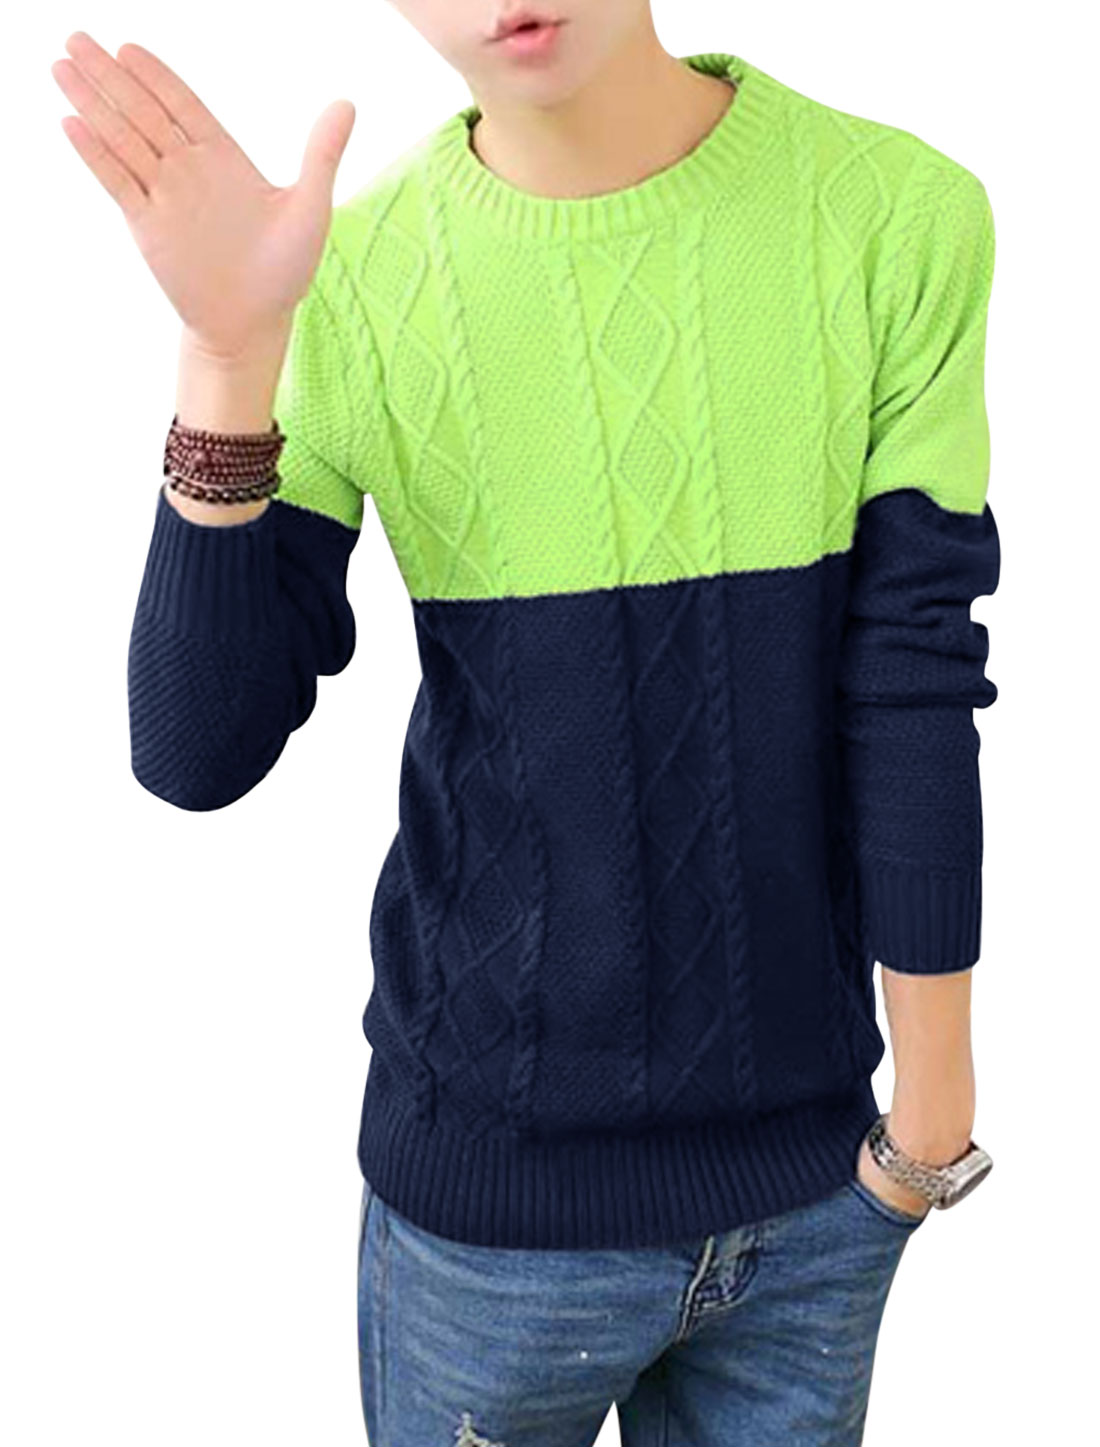 Men Argyle Design Cable Rib Knit Design Colorblock Sweater Green Navy Blue S